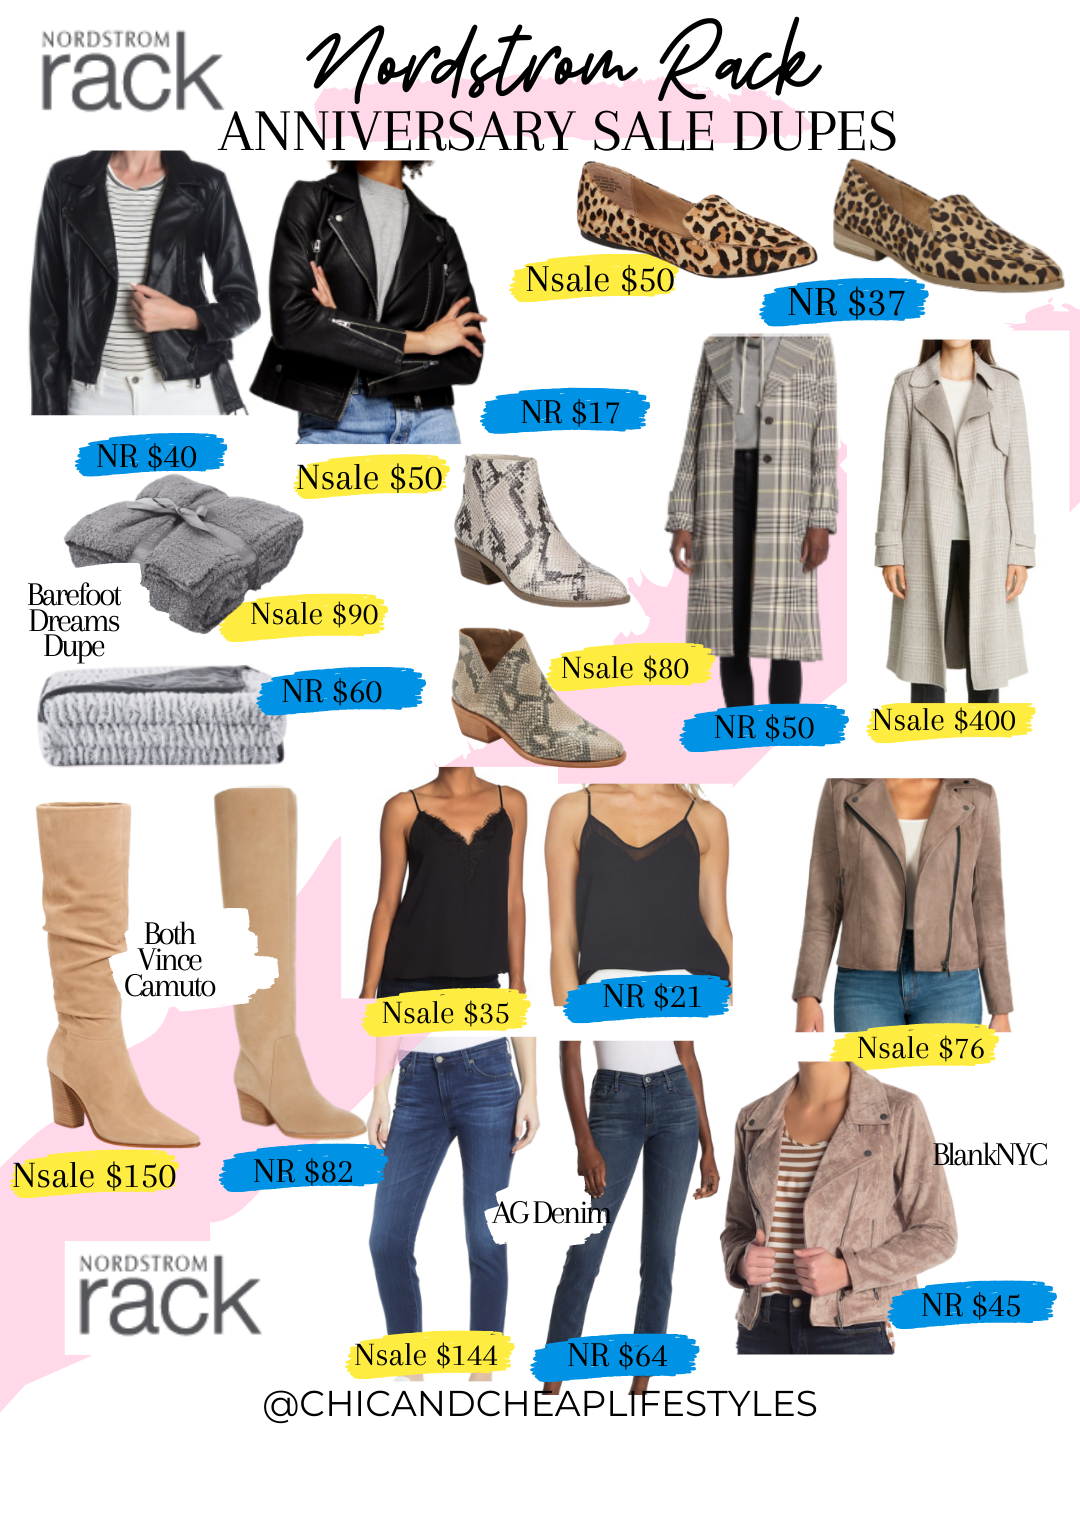 Nordstrom Rack Dupes for the Nordstrom Anniversary Sale